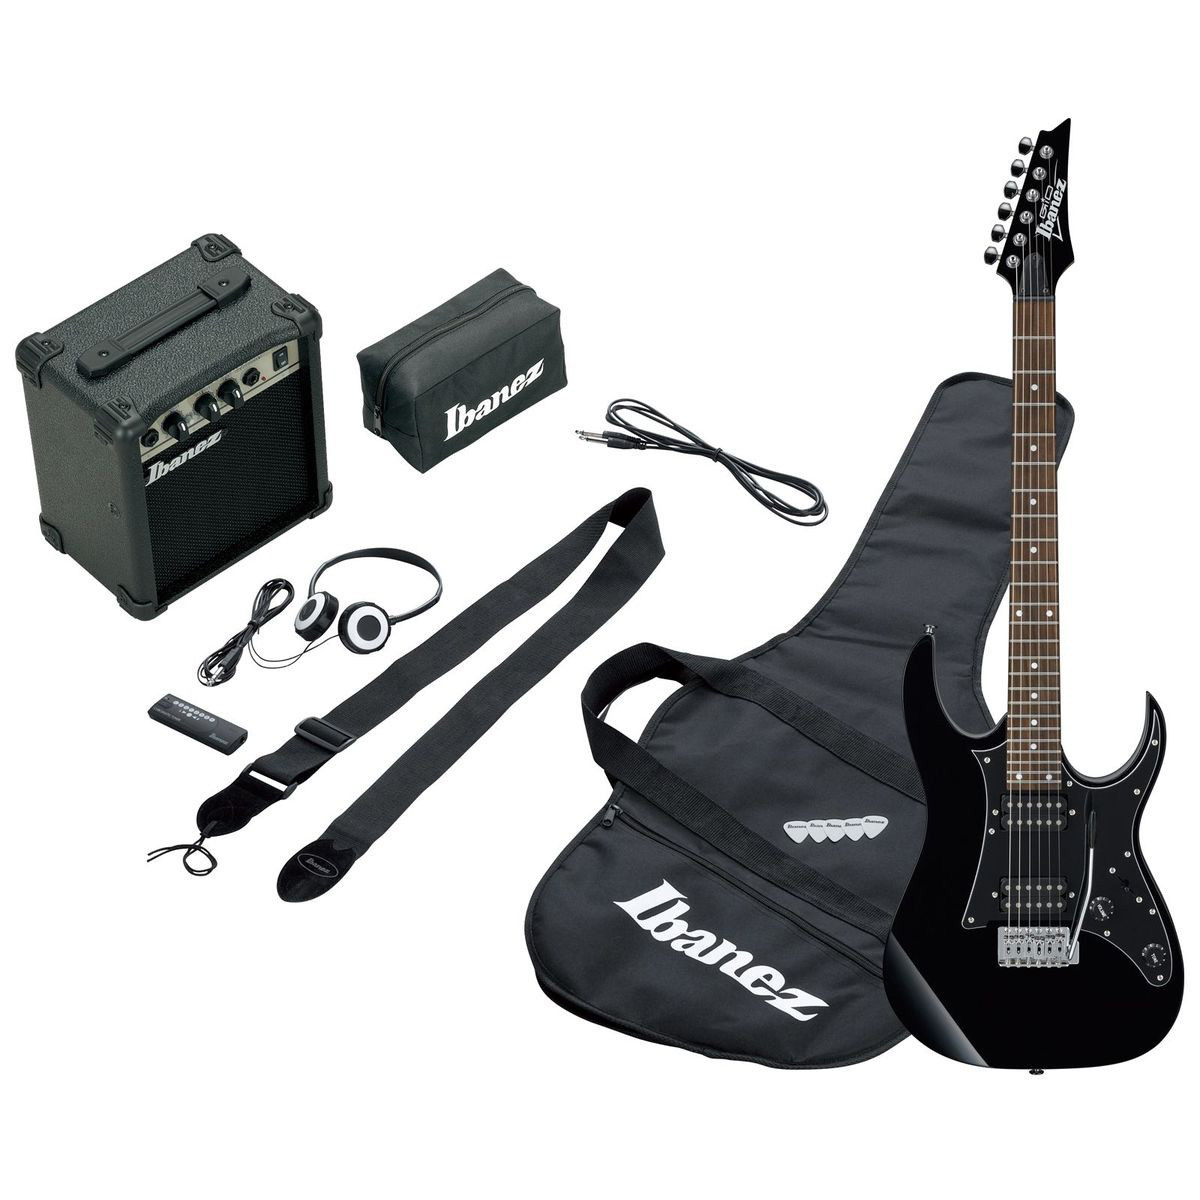 ibanez ijrg200e jumpstart electric guitar pack black at gear4music. Black Bedroom Furniture Sets. Home Design Ideas